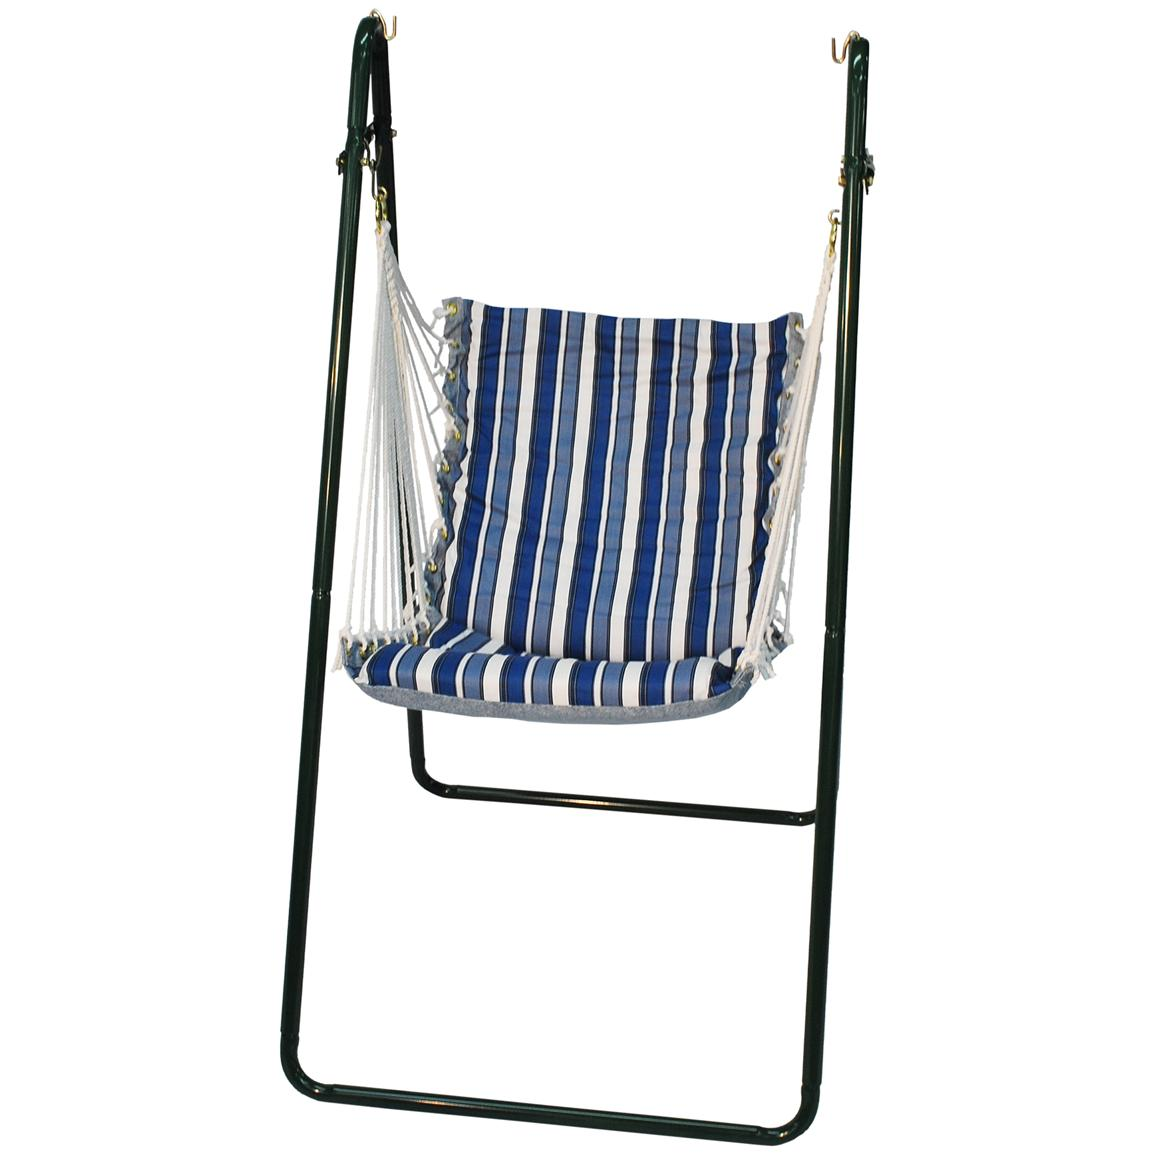 Algoma™ Swing Chair and Stand Combination, Tropical Blue Stripe